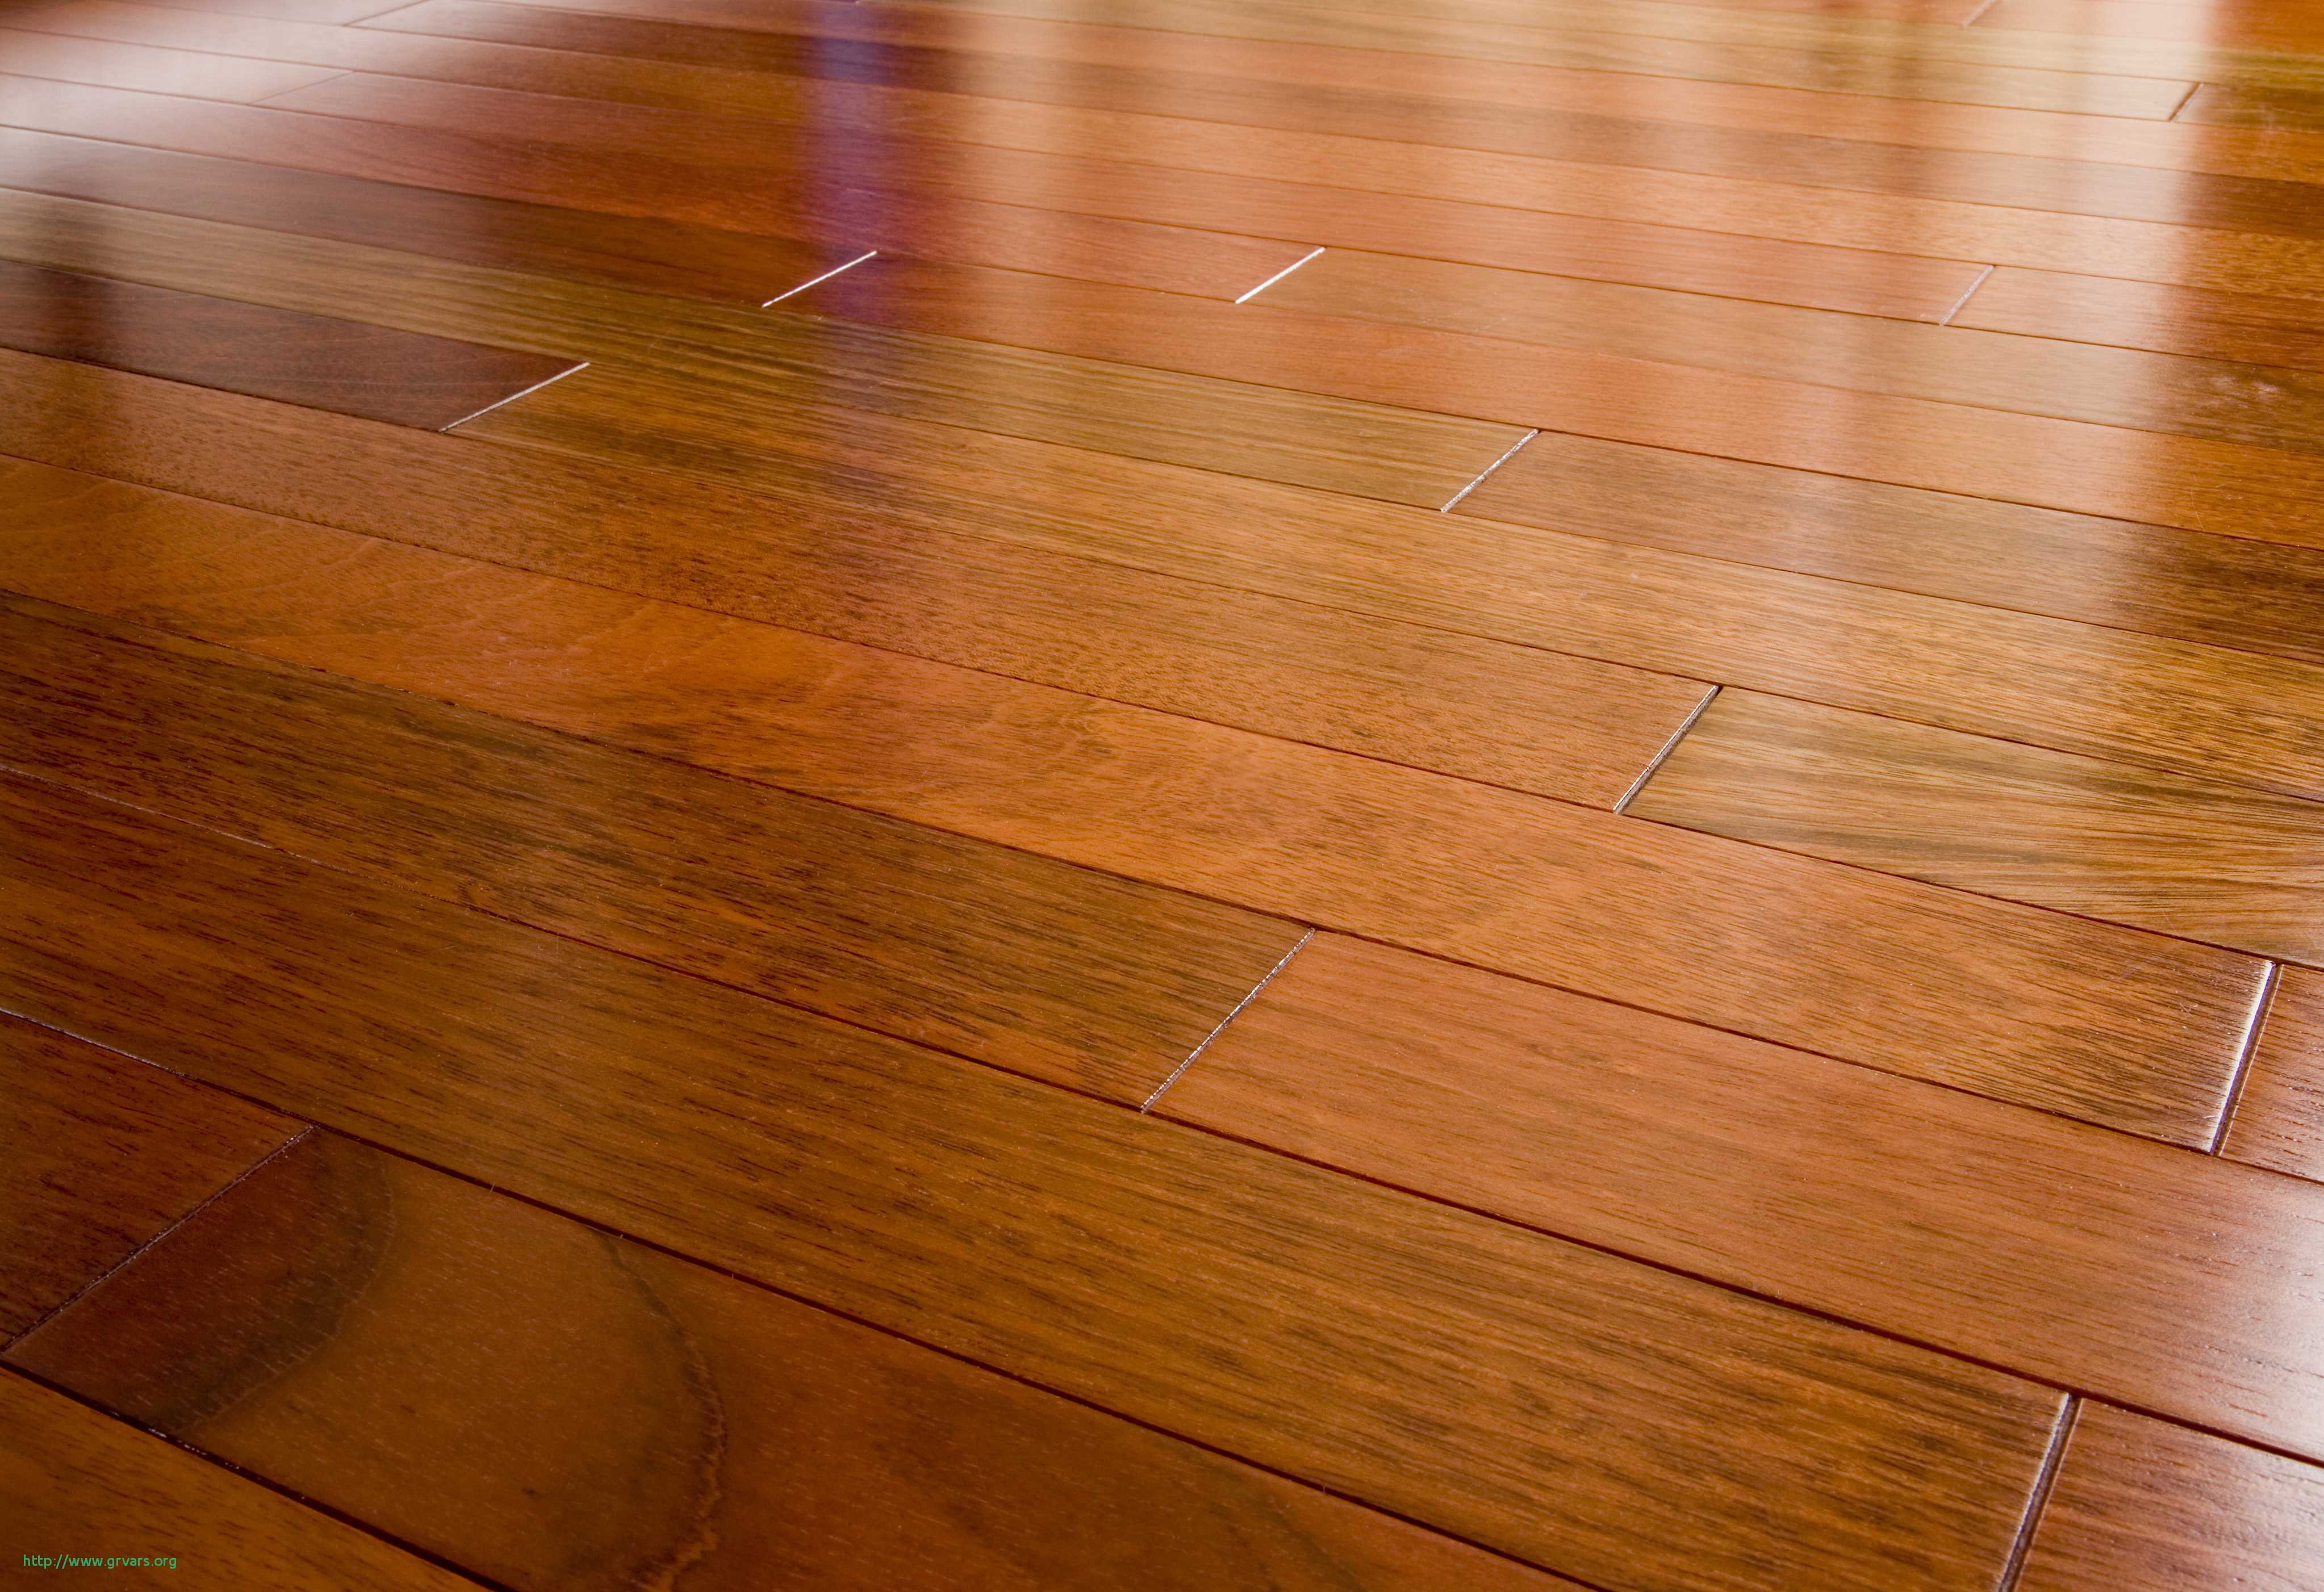 weight of hardwood flooring of 16 inspirant how to lay out wood flooring ideas blog in 0d daily home decoration how to lay out wood flooring inspirant floor fine floor to floor w cirpa